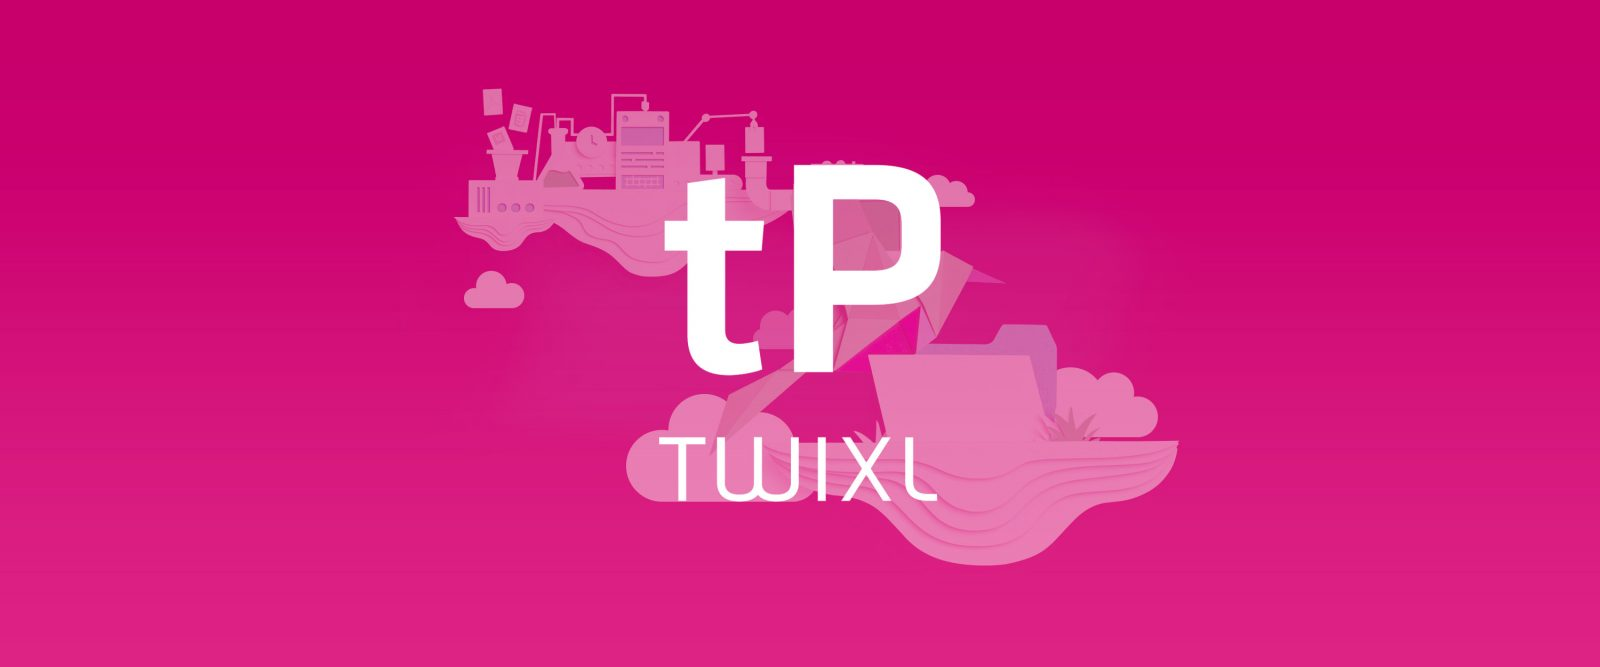 Twixl Publisher 5 has arrived !